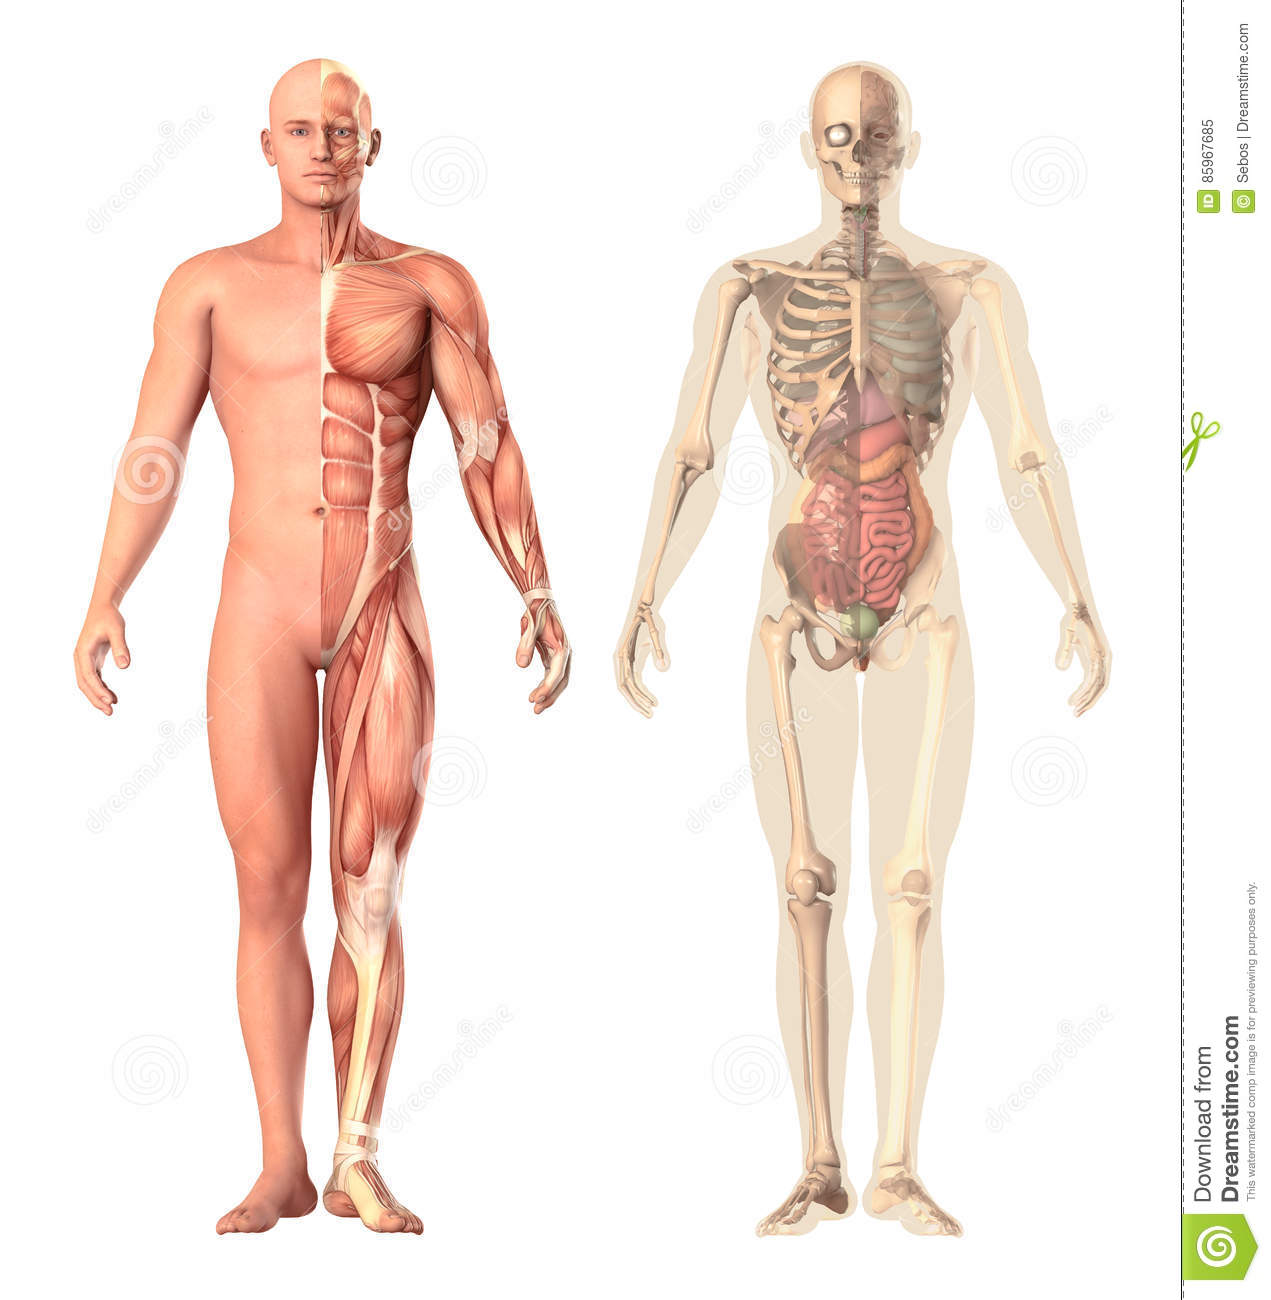 Medical Illustration Of A Human Anatomy Transparency, View. The ...